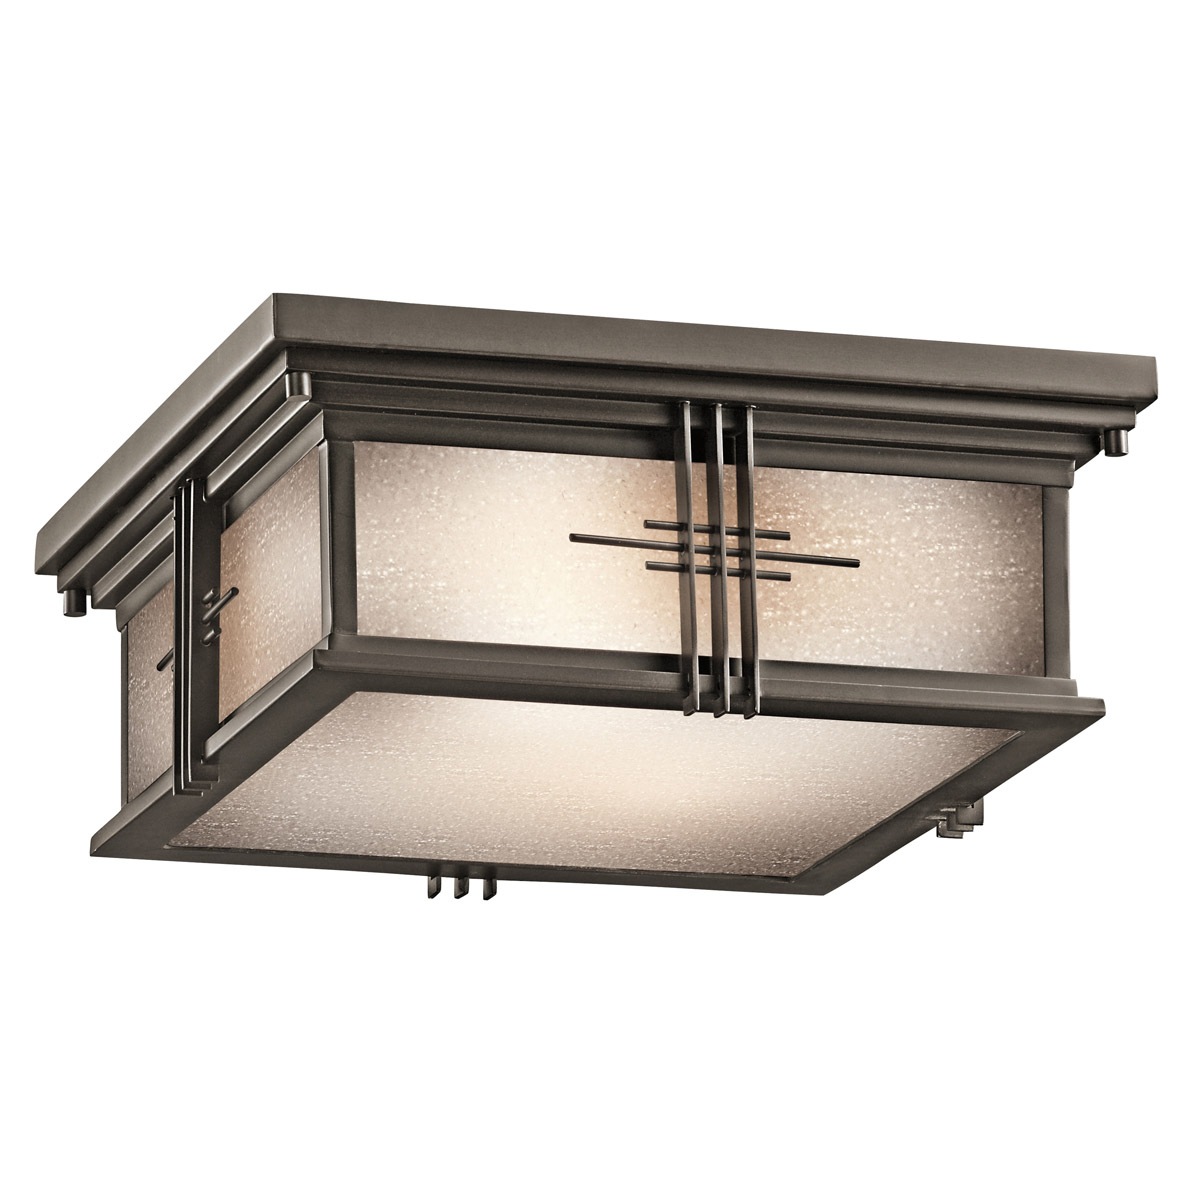 Kichler OZ Portman Square Outdoor Flush Mount Ceiling